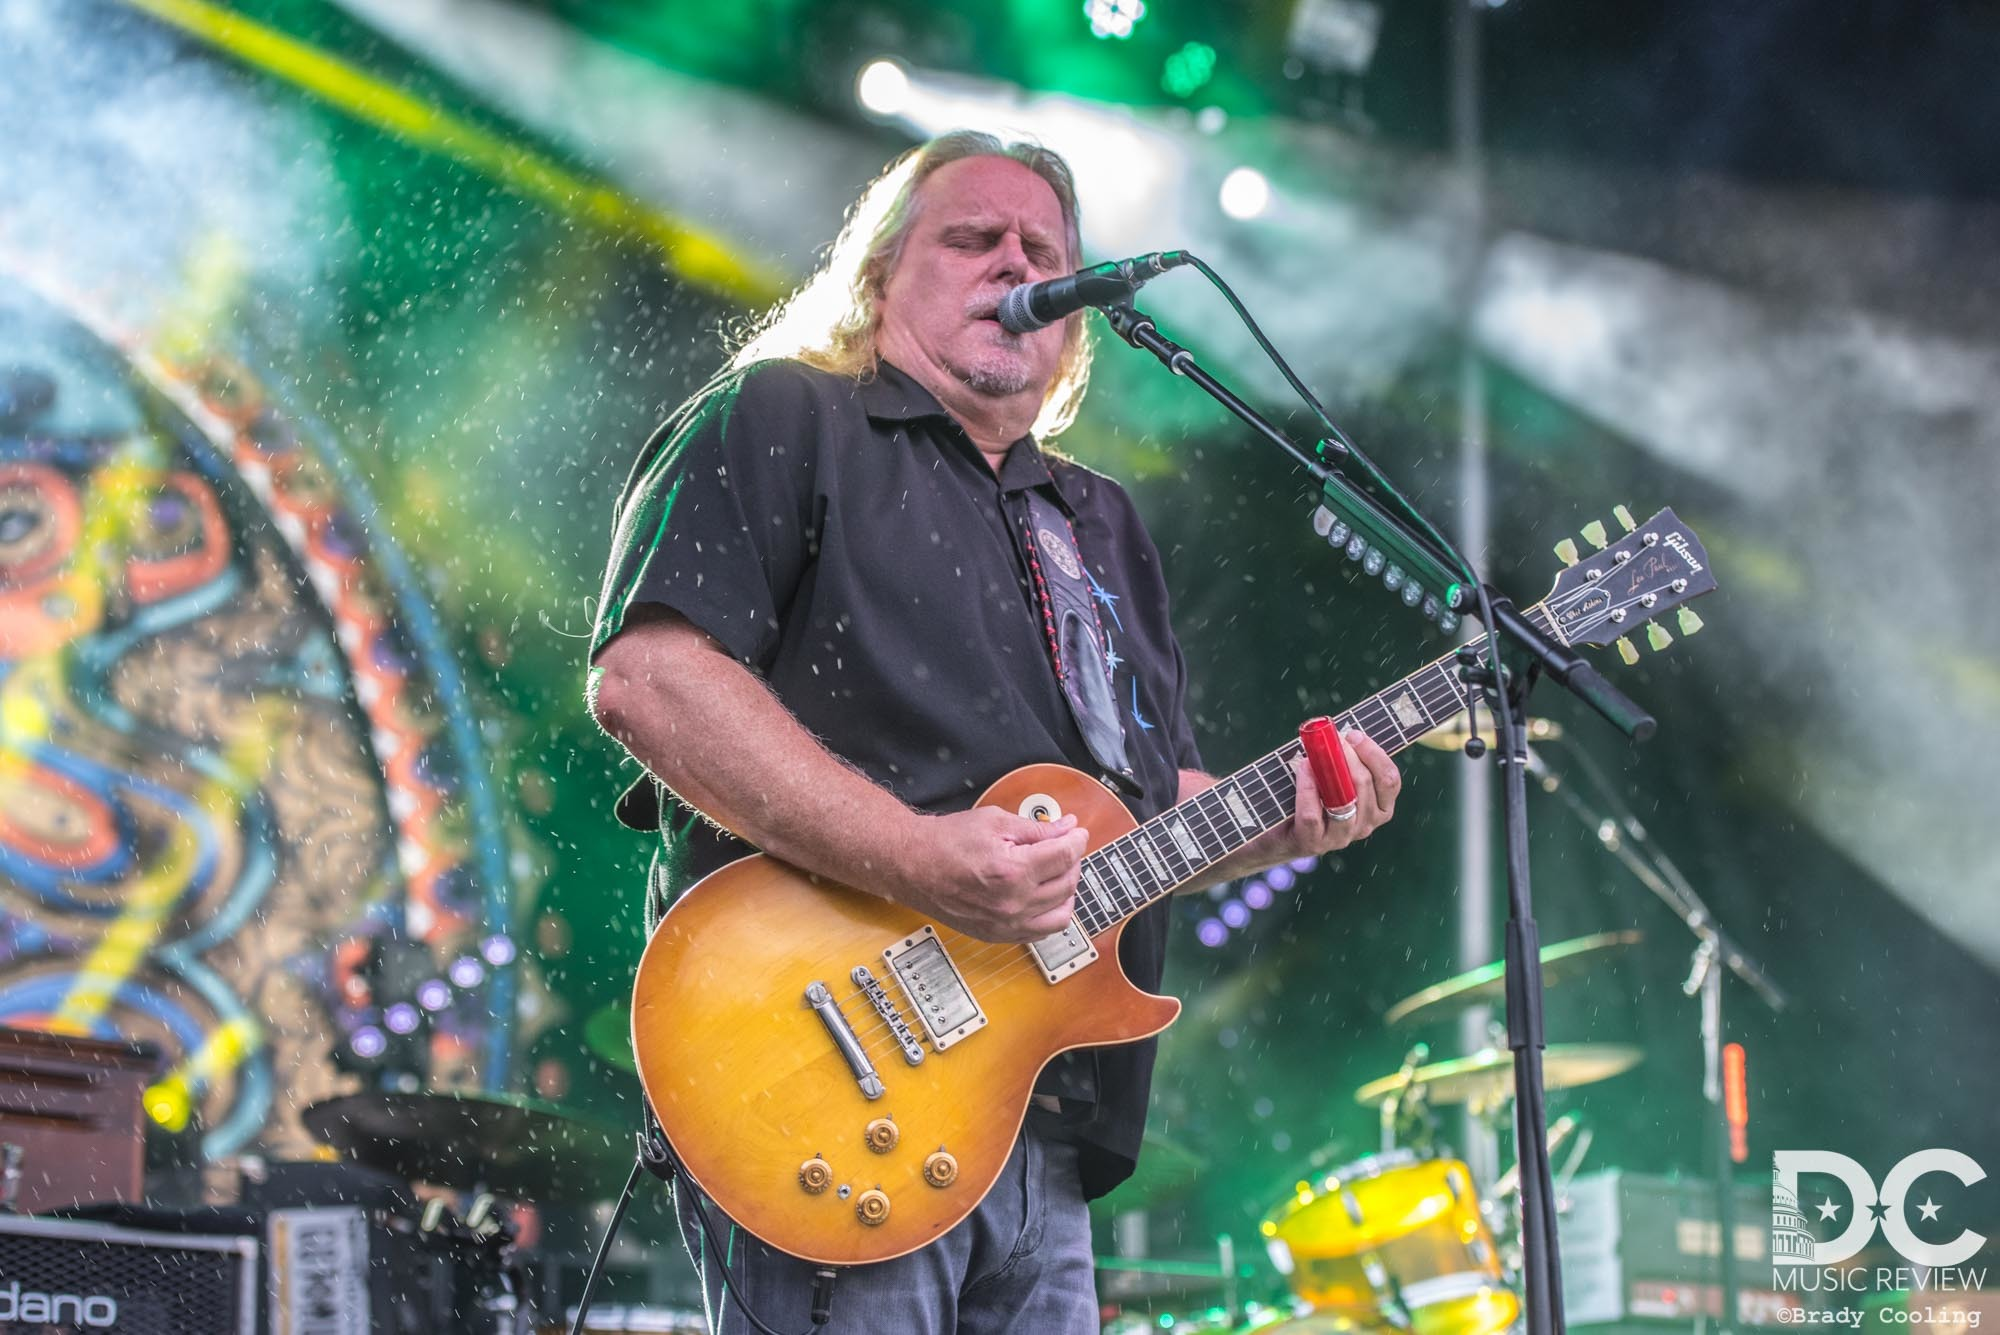 Warren Haynes powers through the rain!